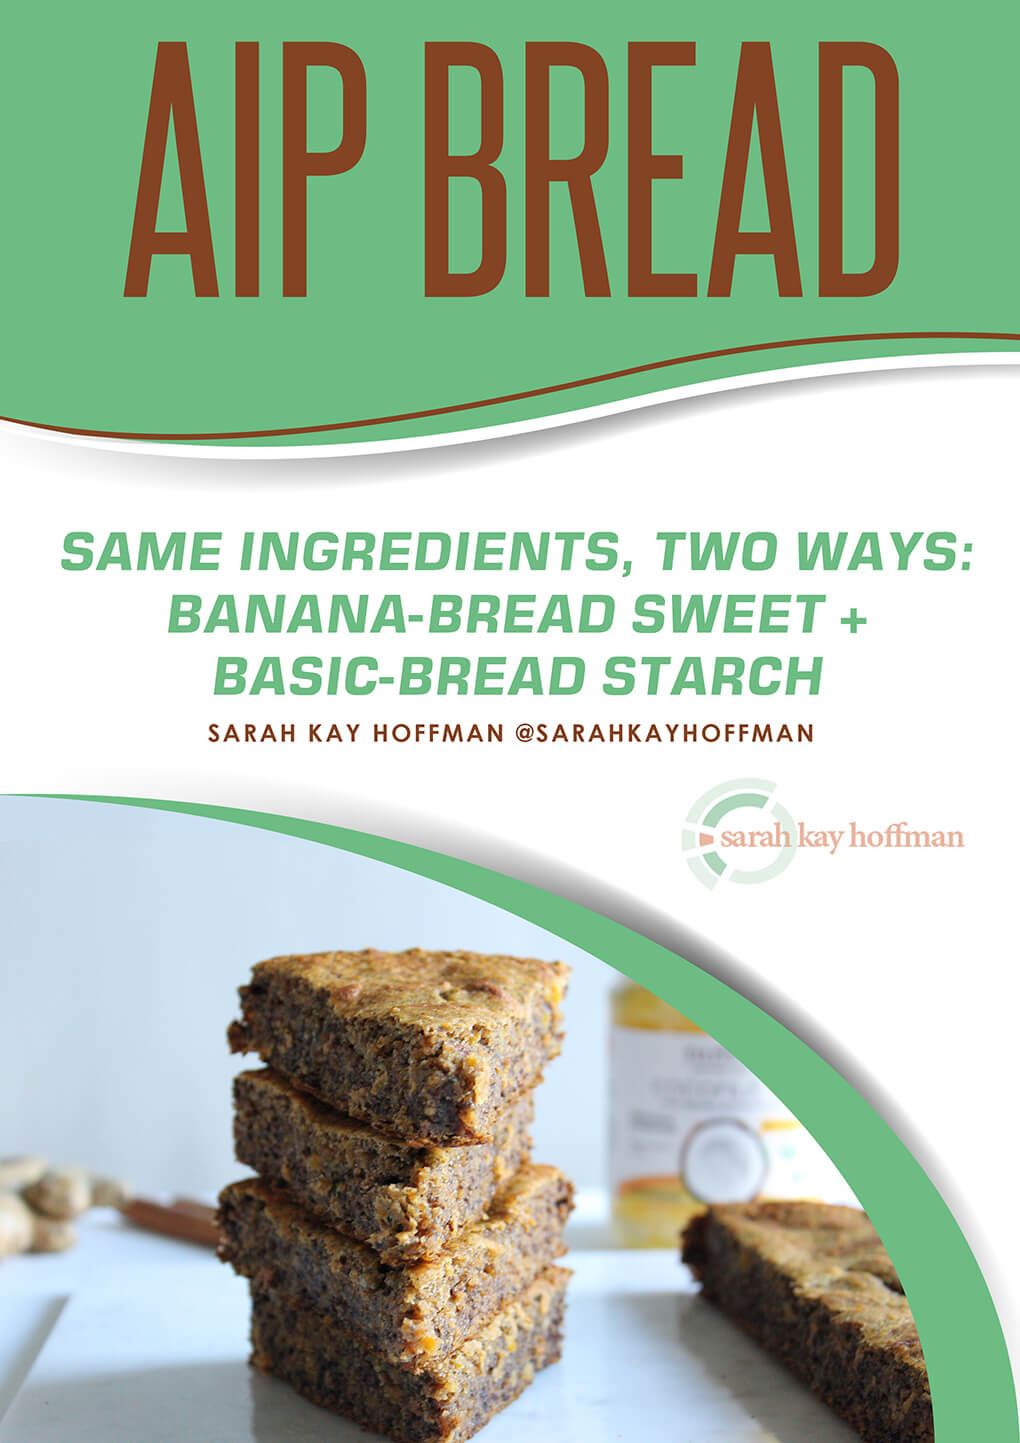 AIP Bread Recipe e-book via sarahkayhoffman.com